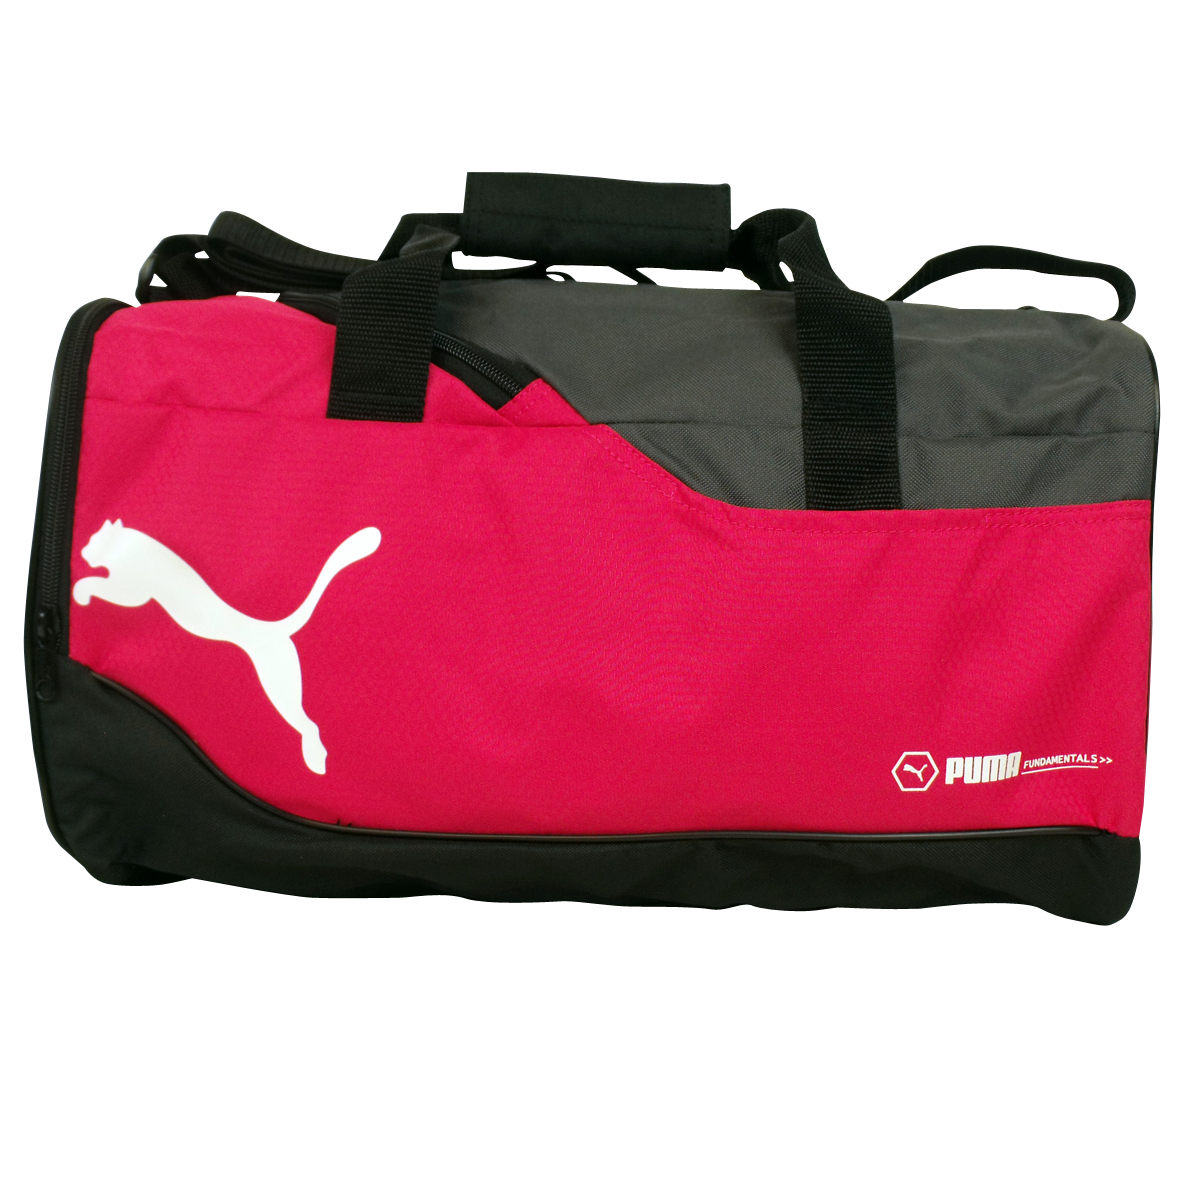 All Bags products View all accessories We have a fantastic range of stylish and practical bags available including backpacks, rucksacks, daypacks, washbags, Duffle bags, Gym bags, Messenger bags and much more at amazingly low prices.